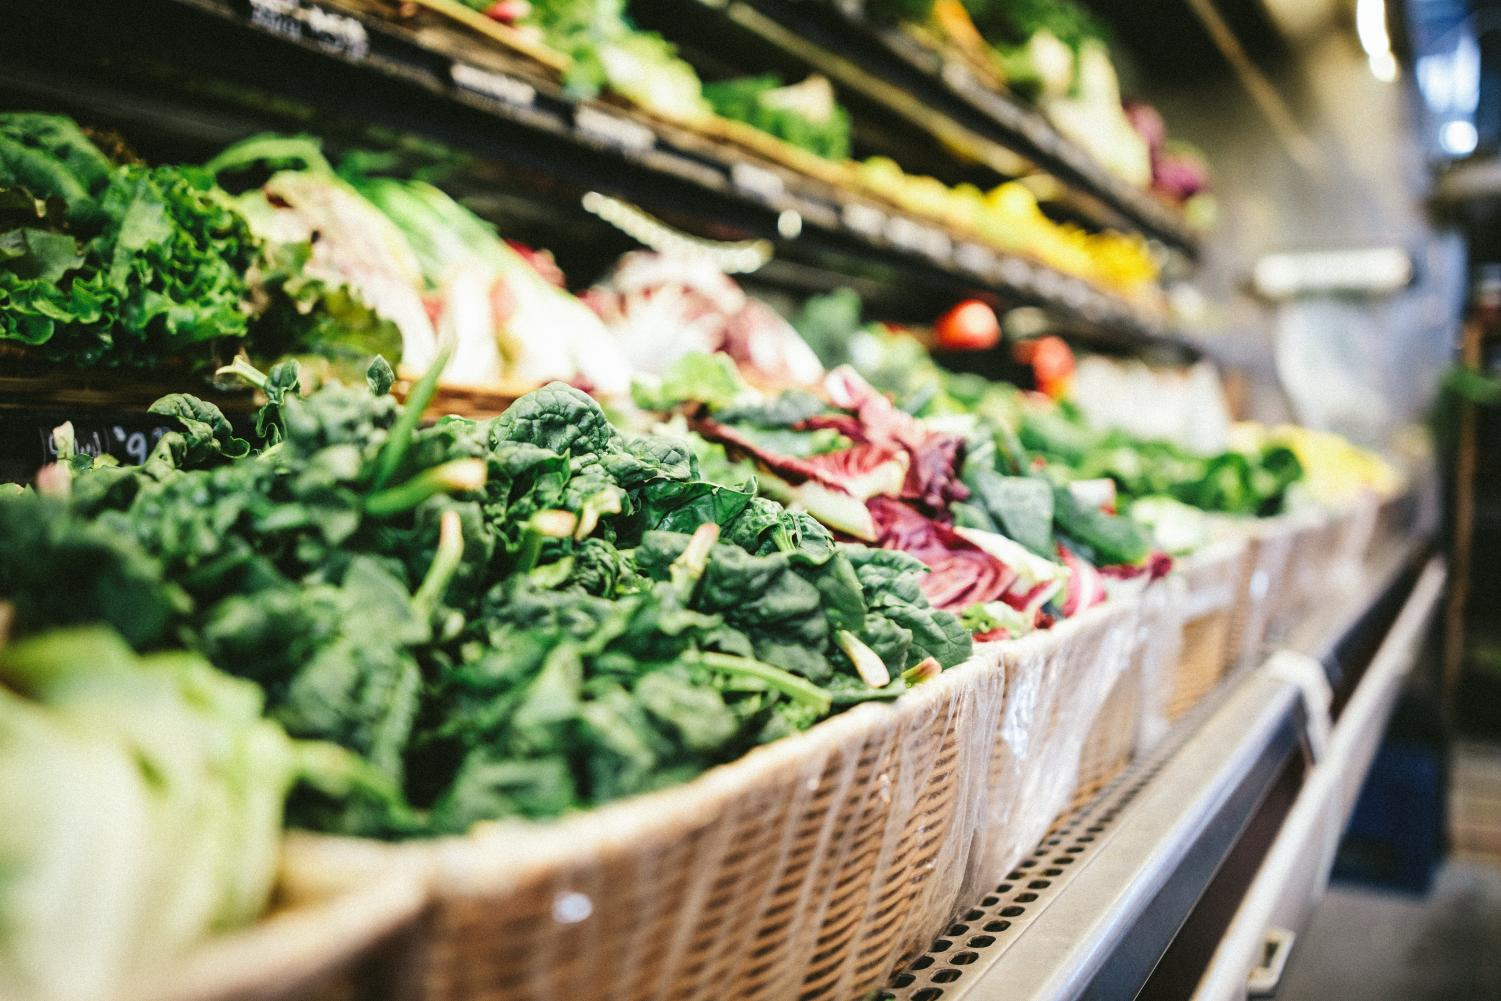 It is important to wash all produce during government shutdowns; the FDA won't always be there to clean all produce.